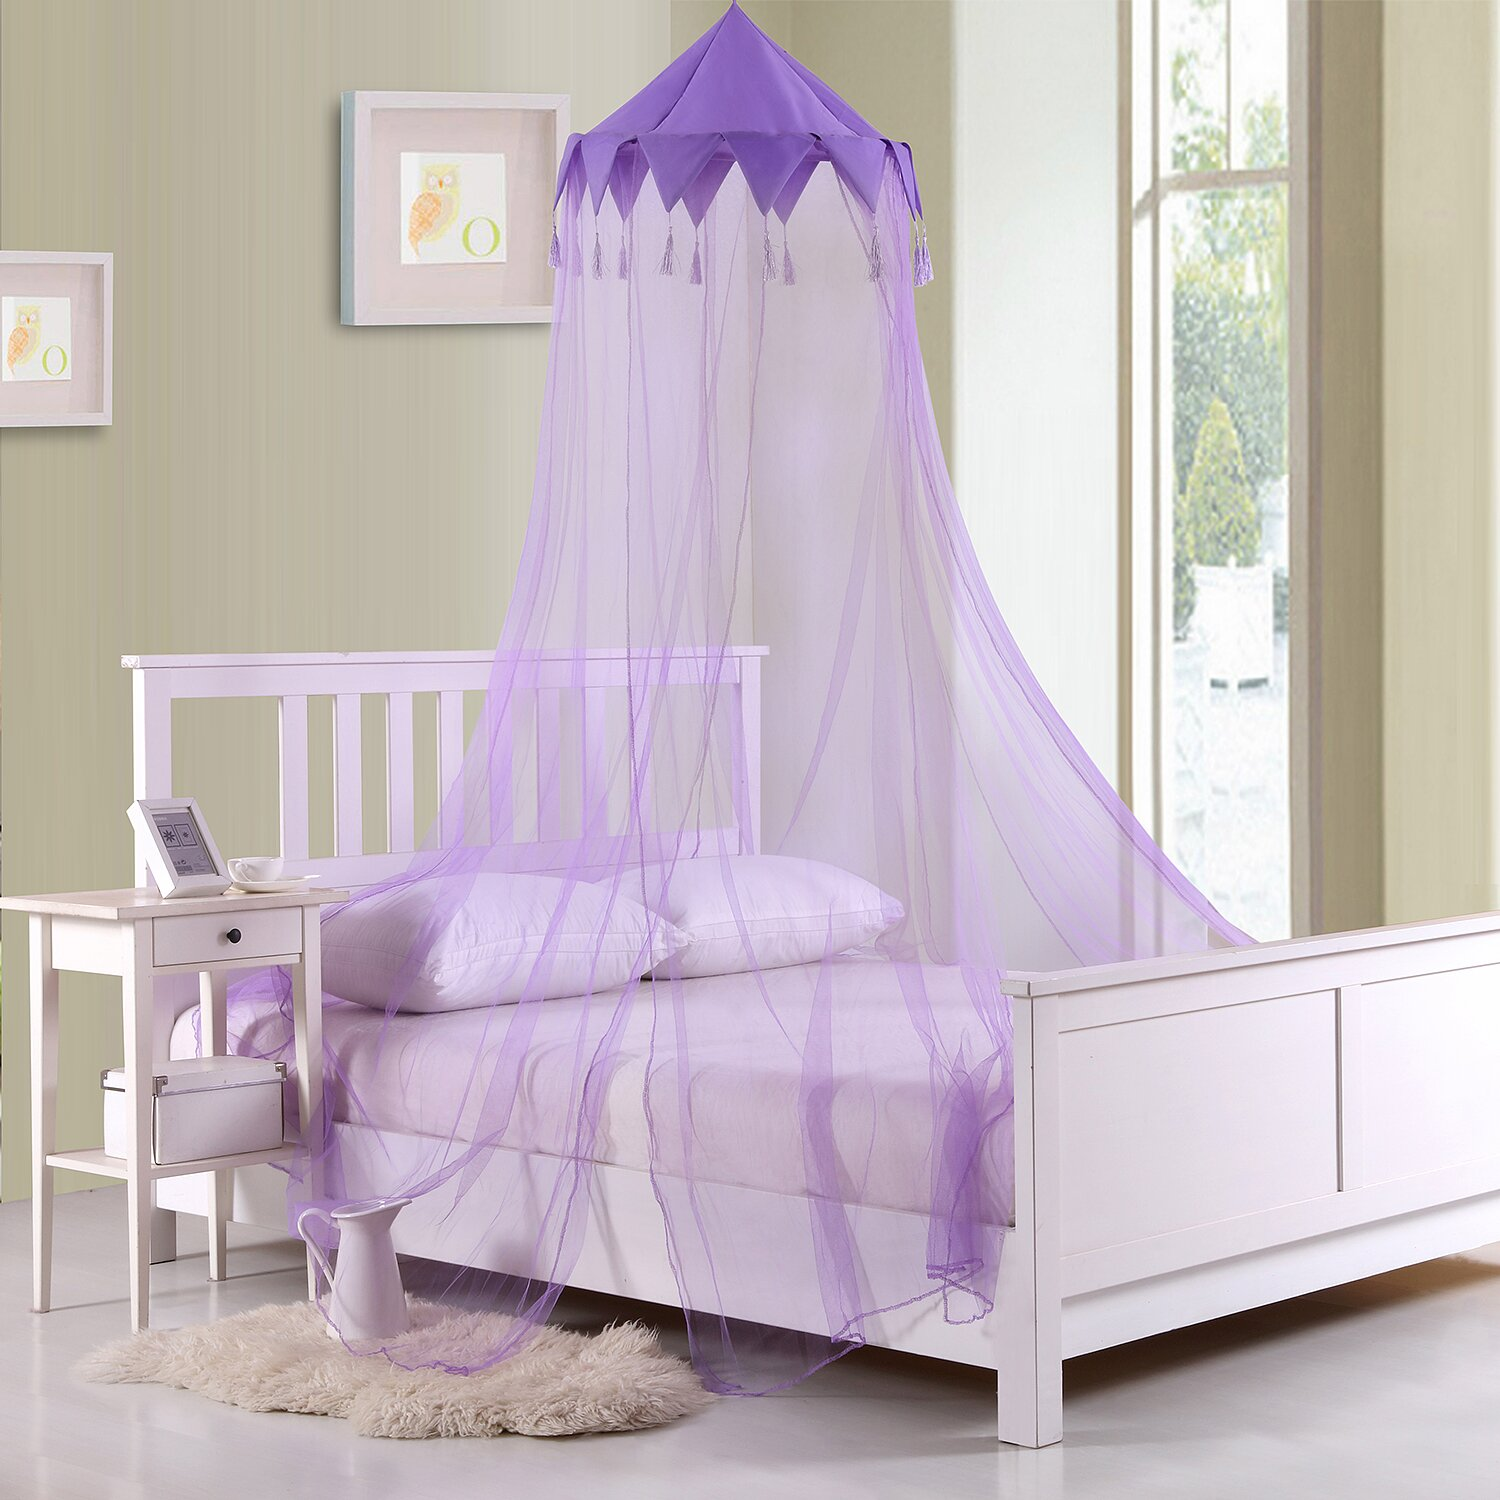 Casablanca Kids Harlequin Kids Collapsible Hoop Sheer Bed